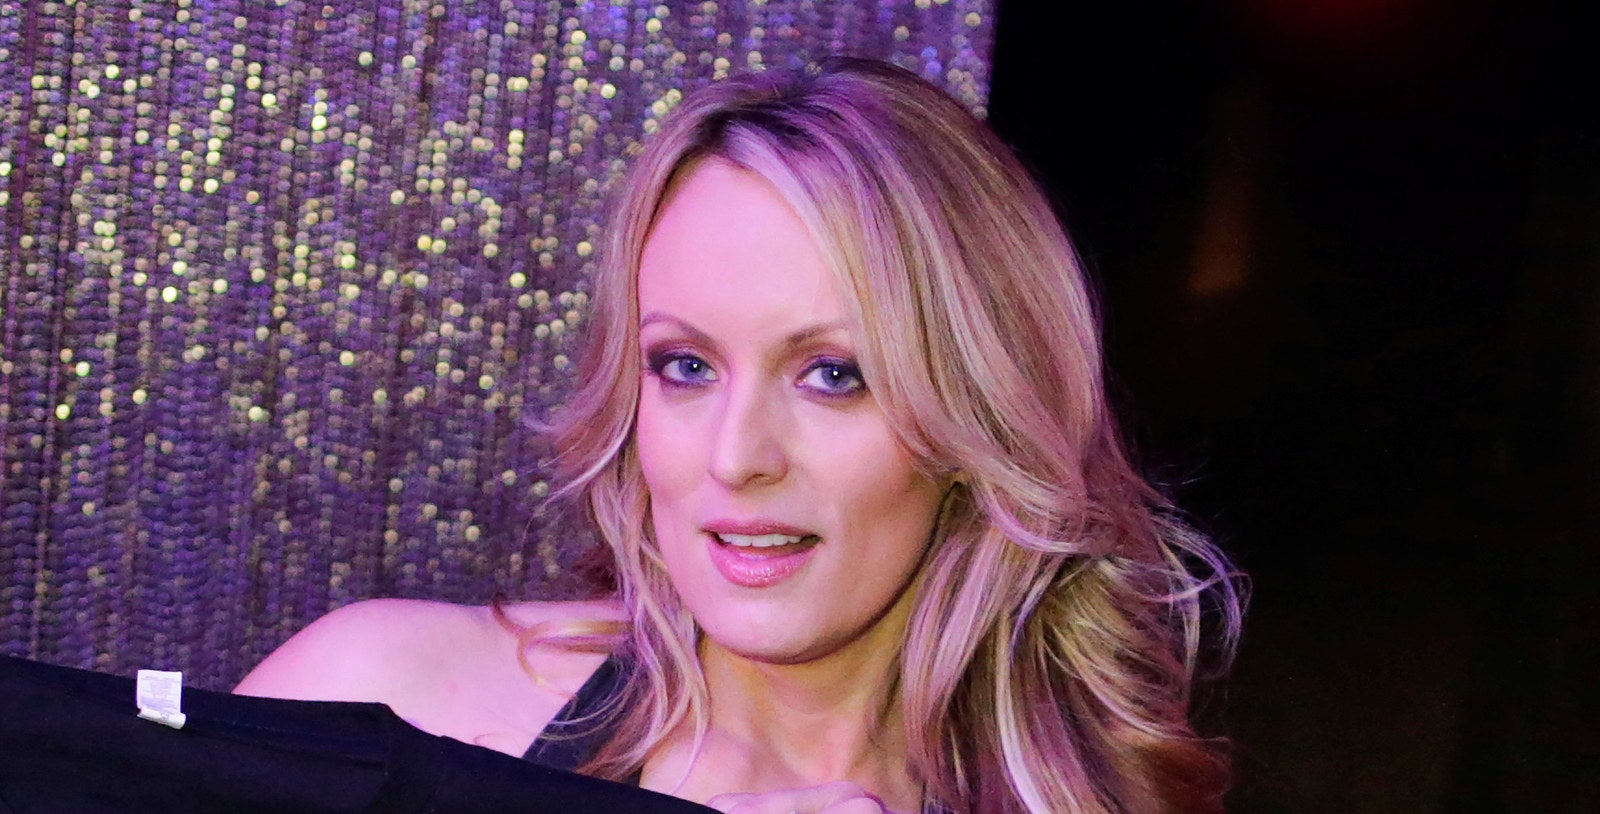 Stephanie Clifford, also known as Stormy Daniels